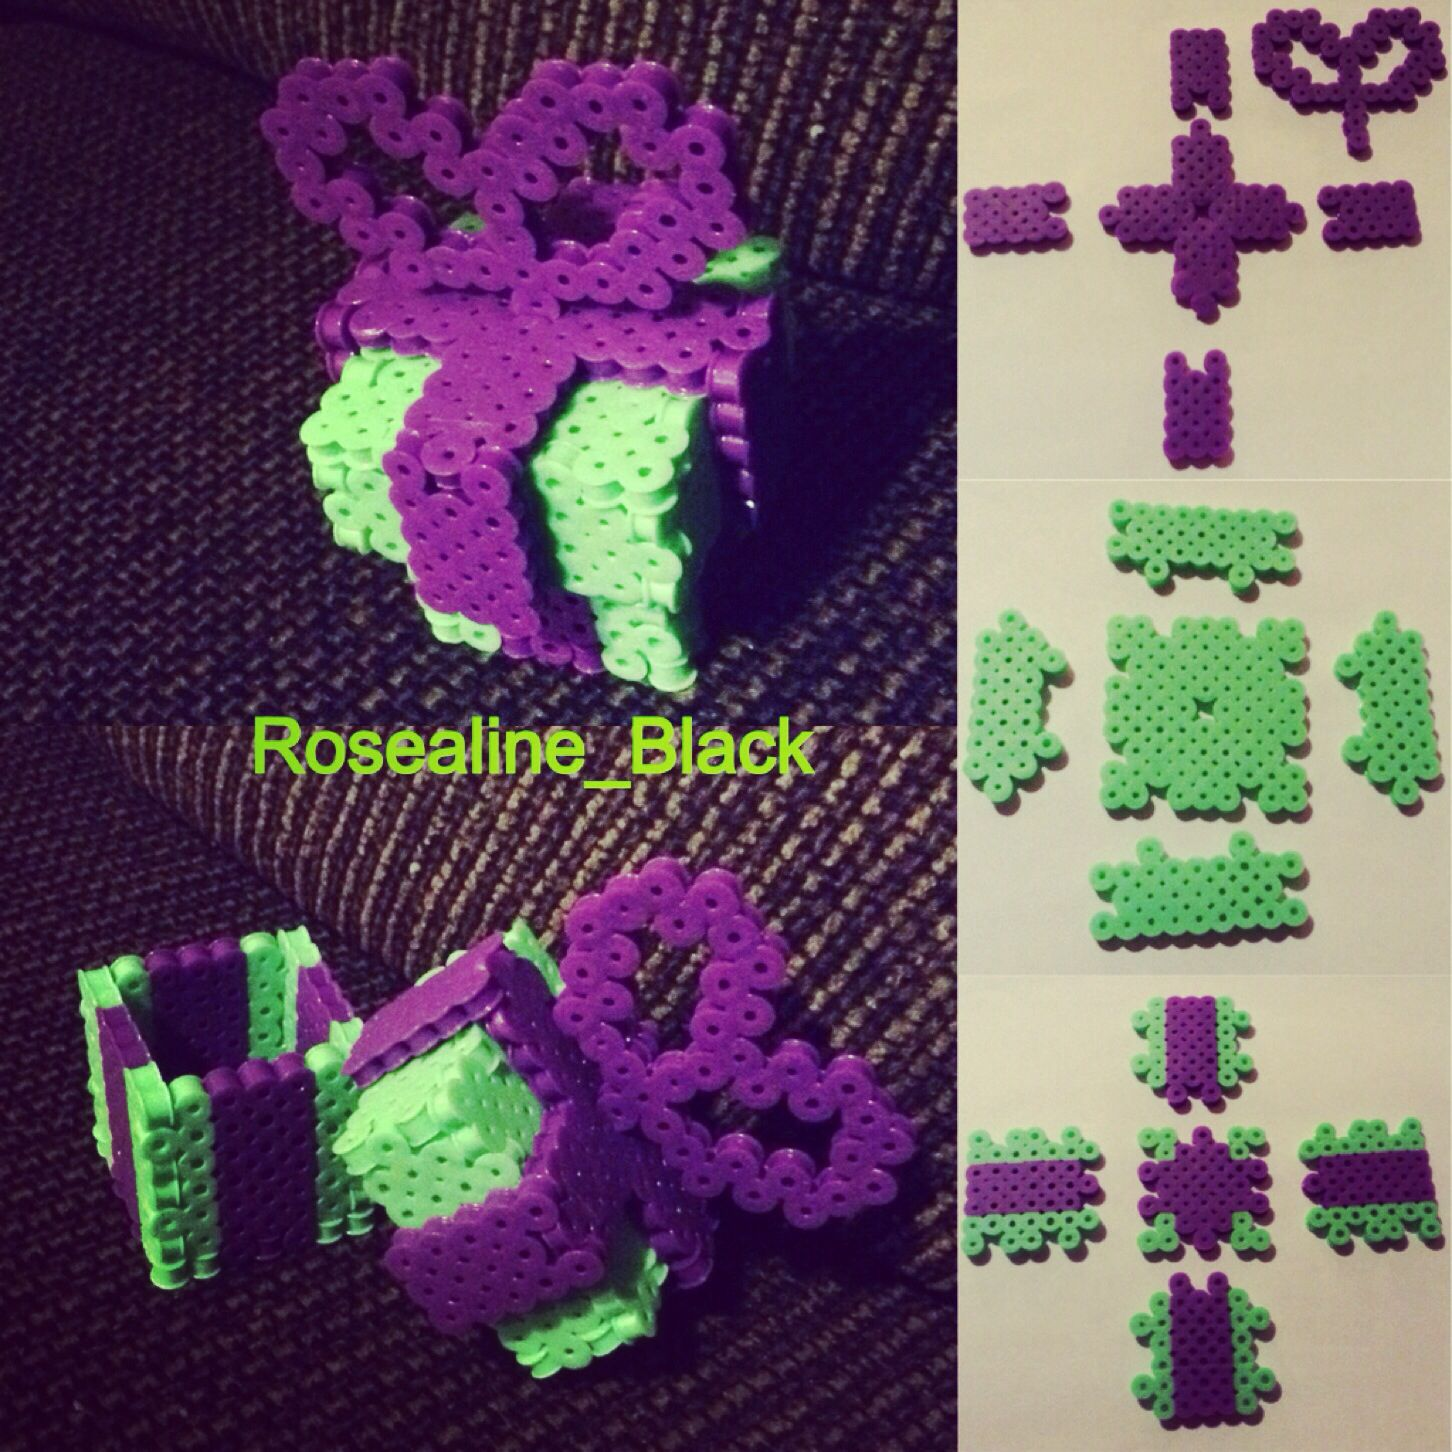 3d perler bead box pattern designed and made by rosealine black 3d perler bead box pattern designed and made by rosealine black